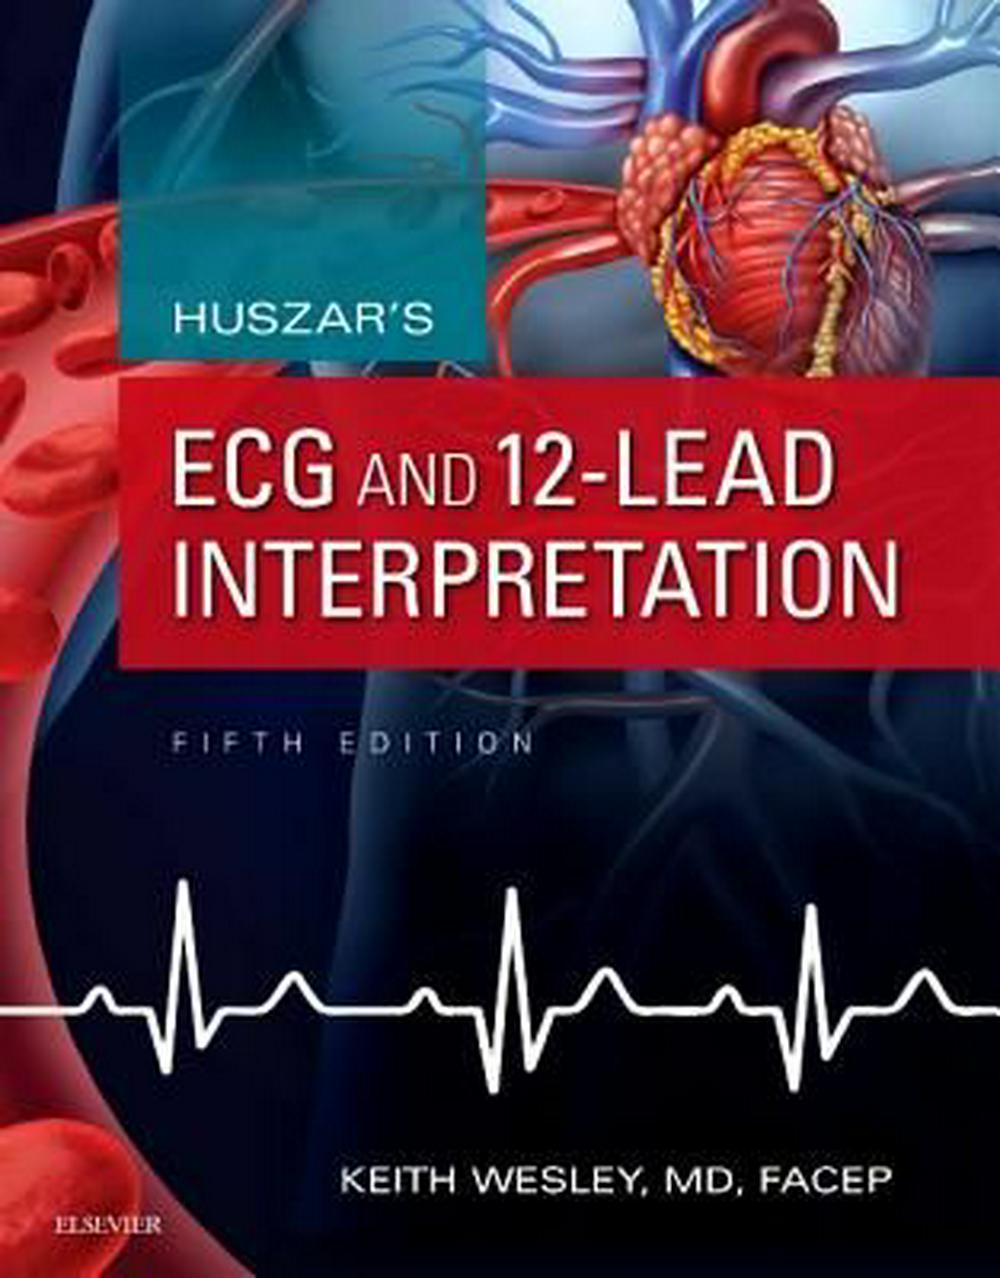 Huszar's ECG and 12-Lead Interpretation, 5e